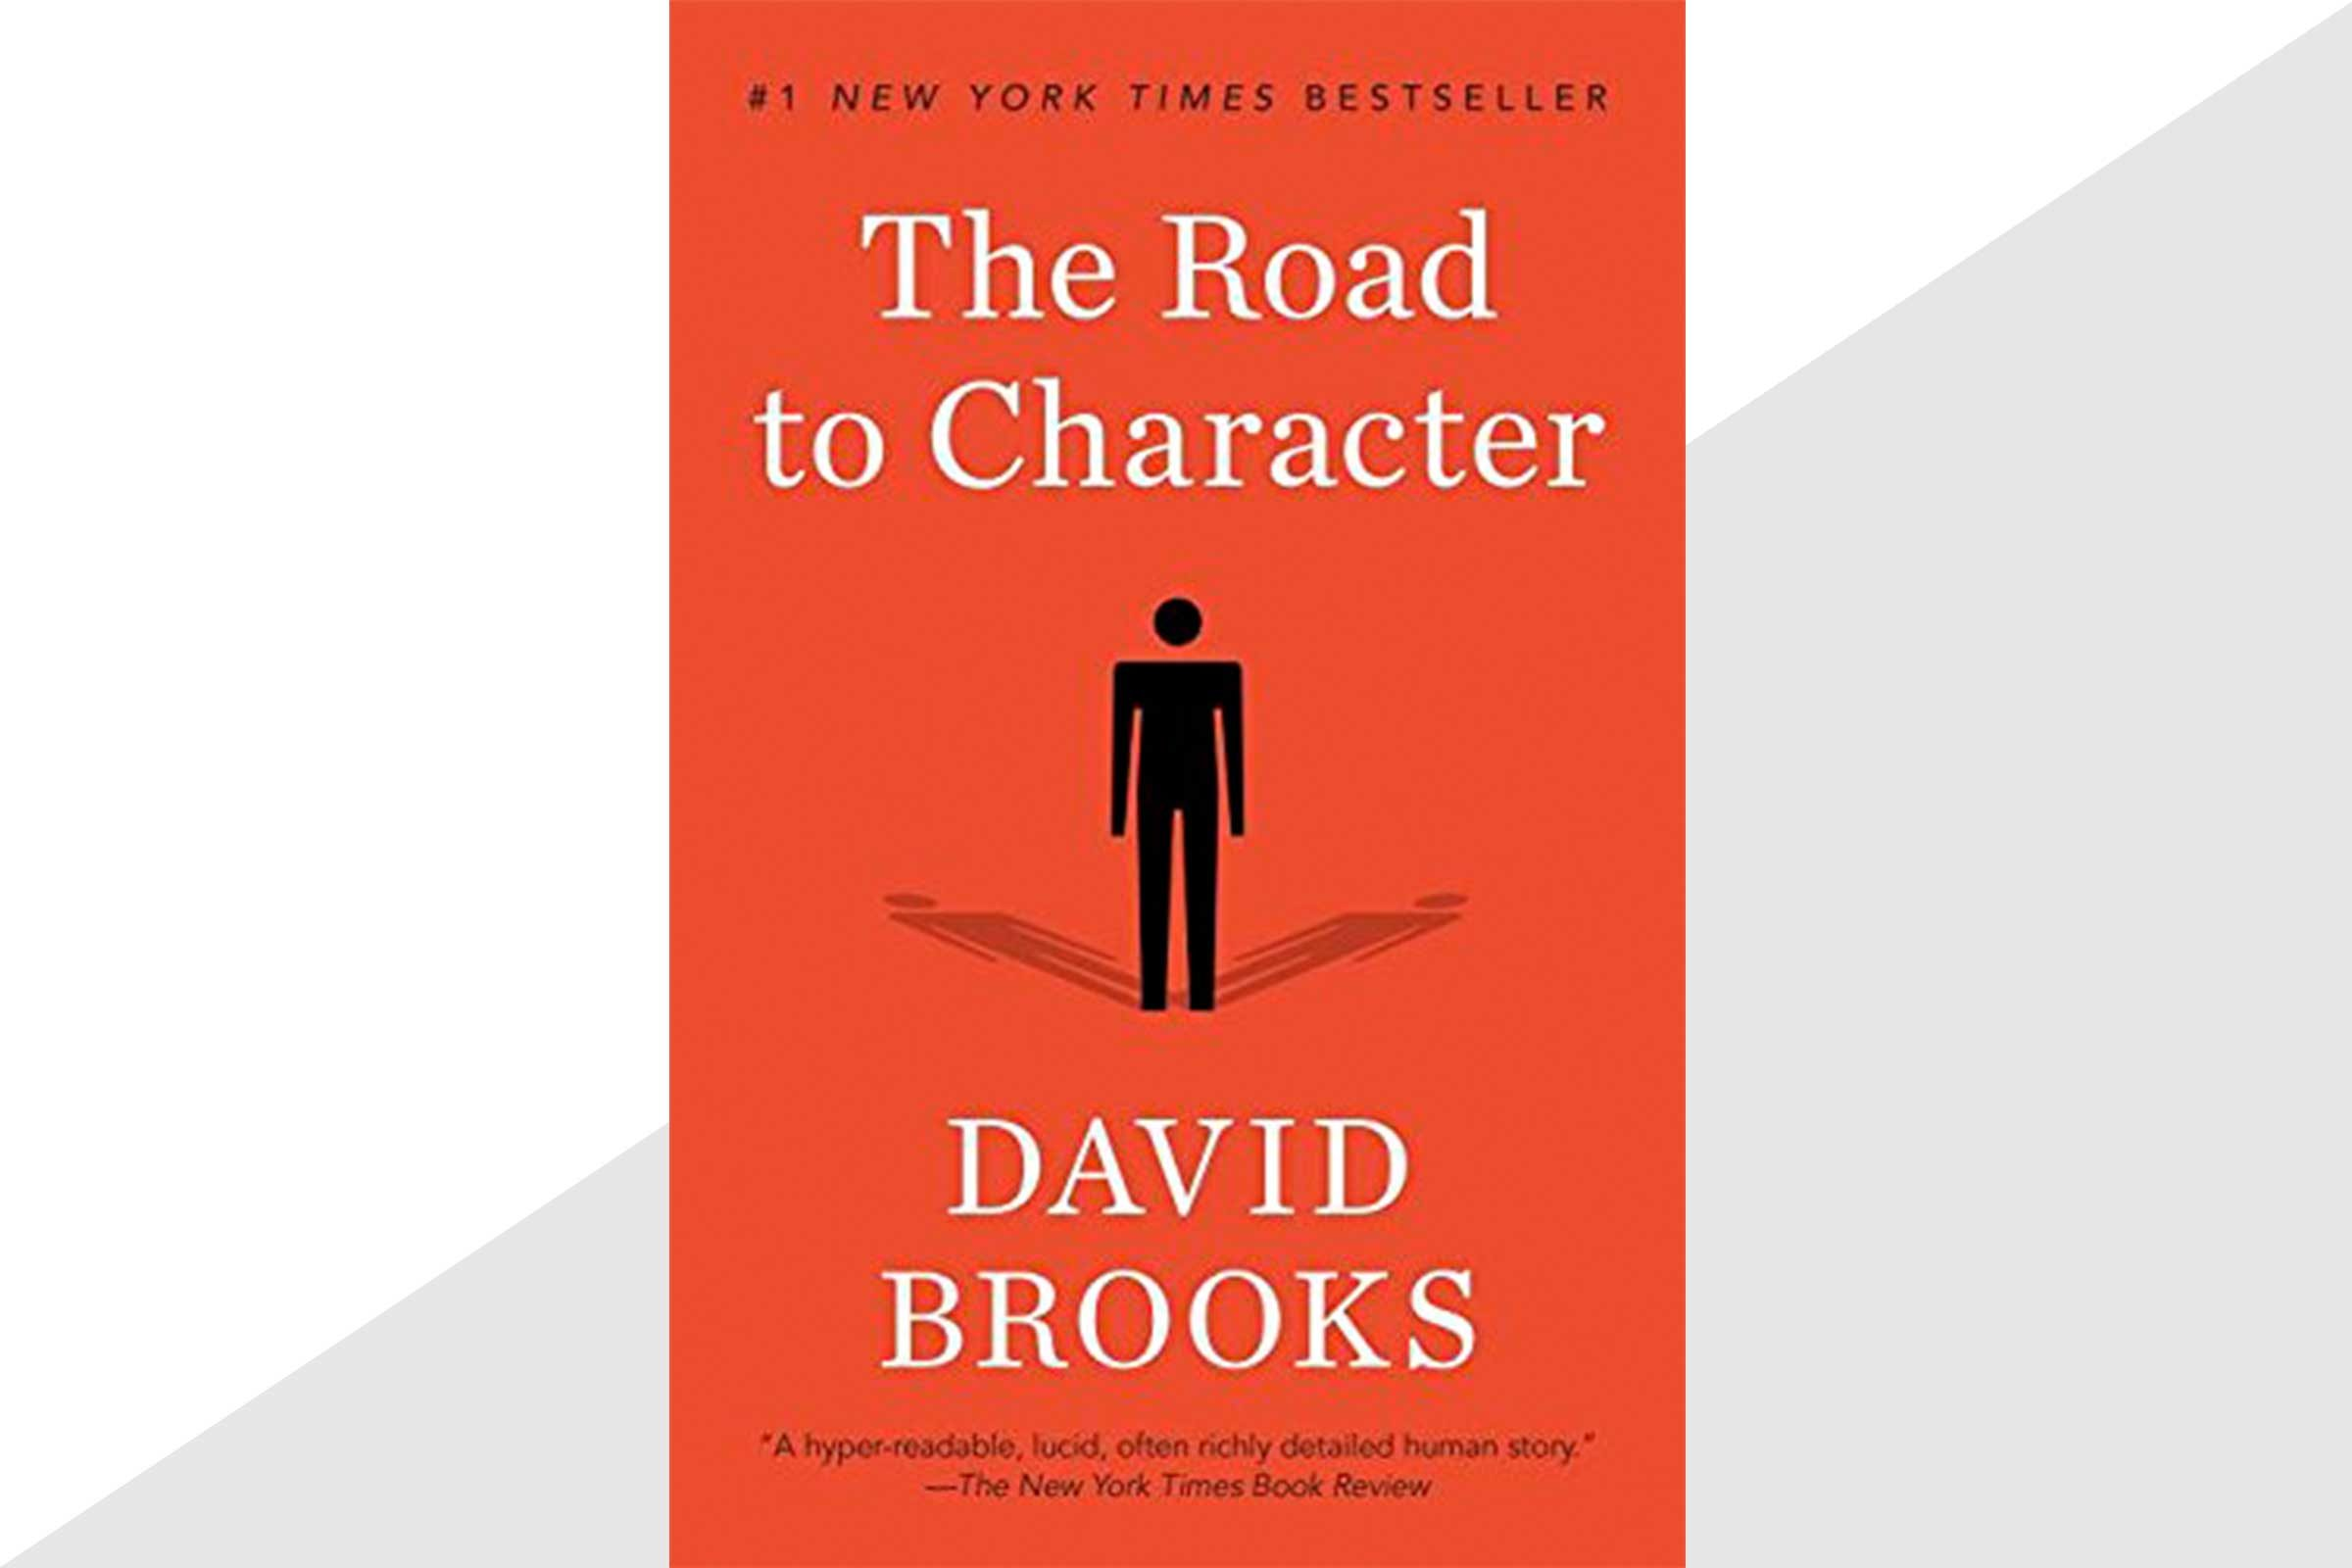 Most Quotable Books  Quotes From Books  Readers Digest The Road To Character By David Brooks Topics For An Essay Paper also Help Writing A Story  I Need Help Writing A Literature Review